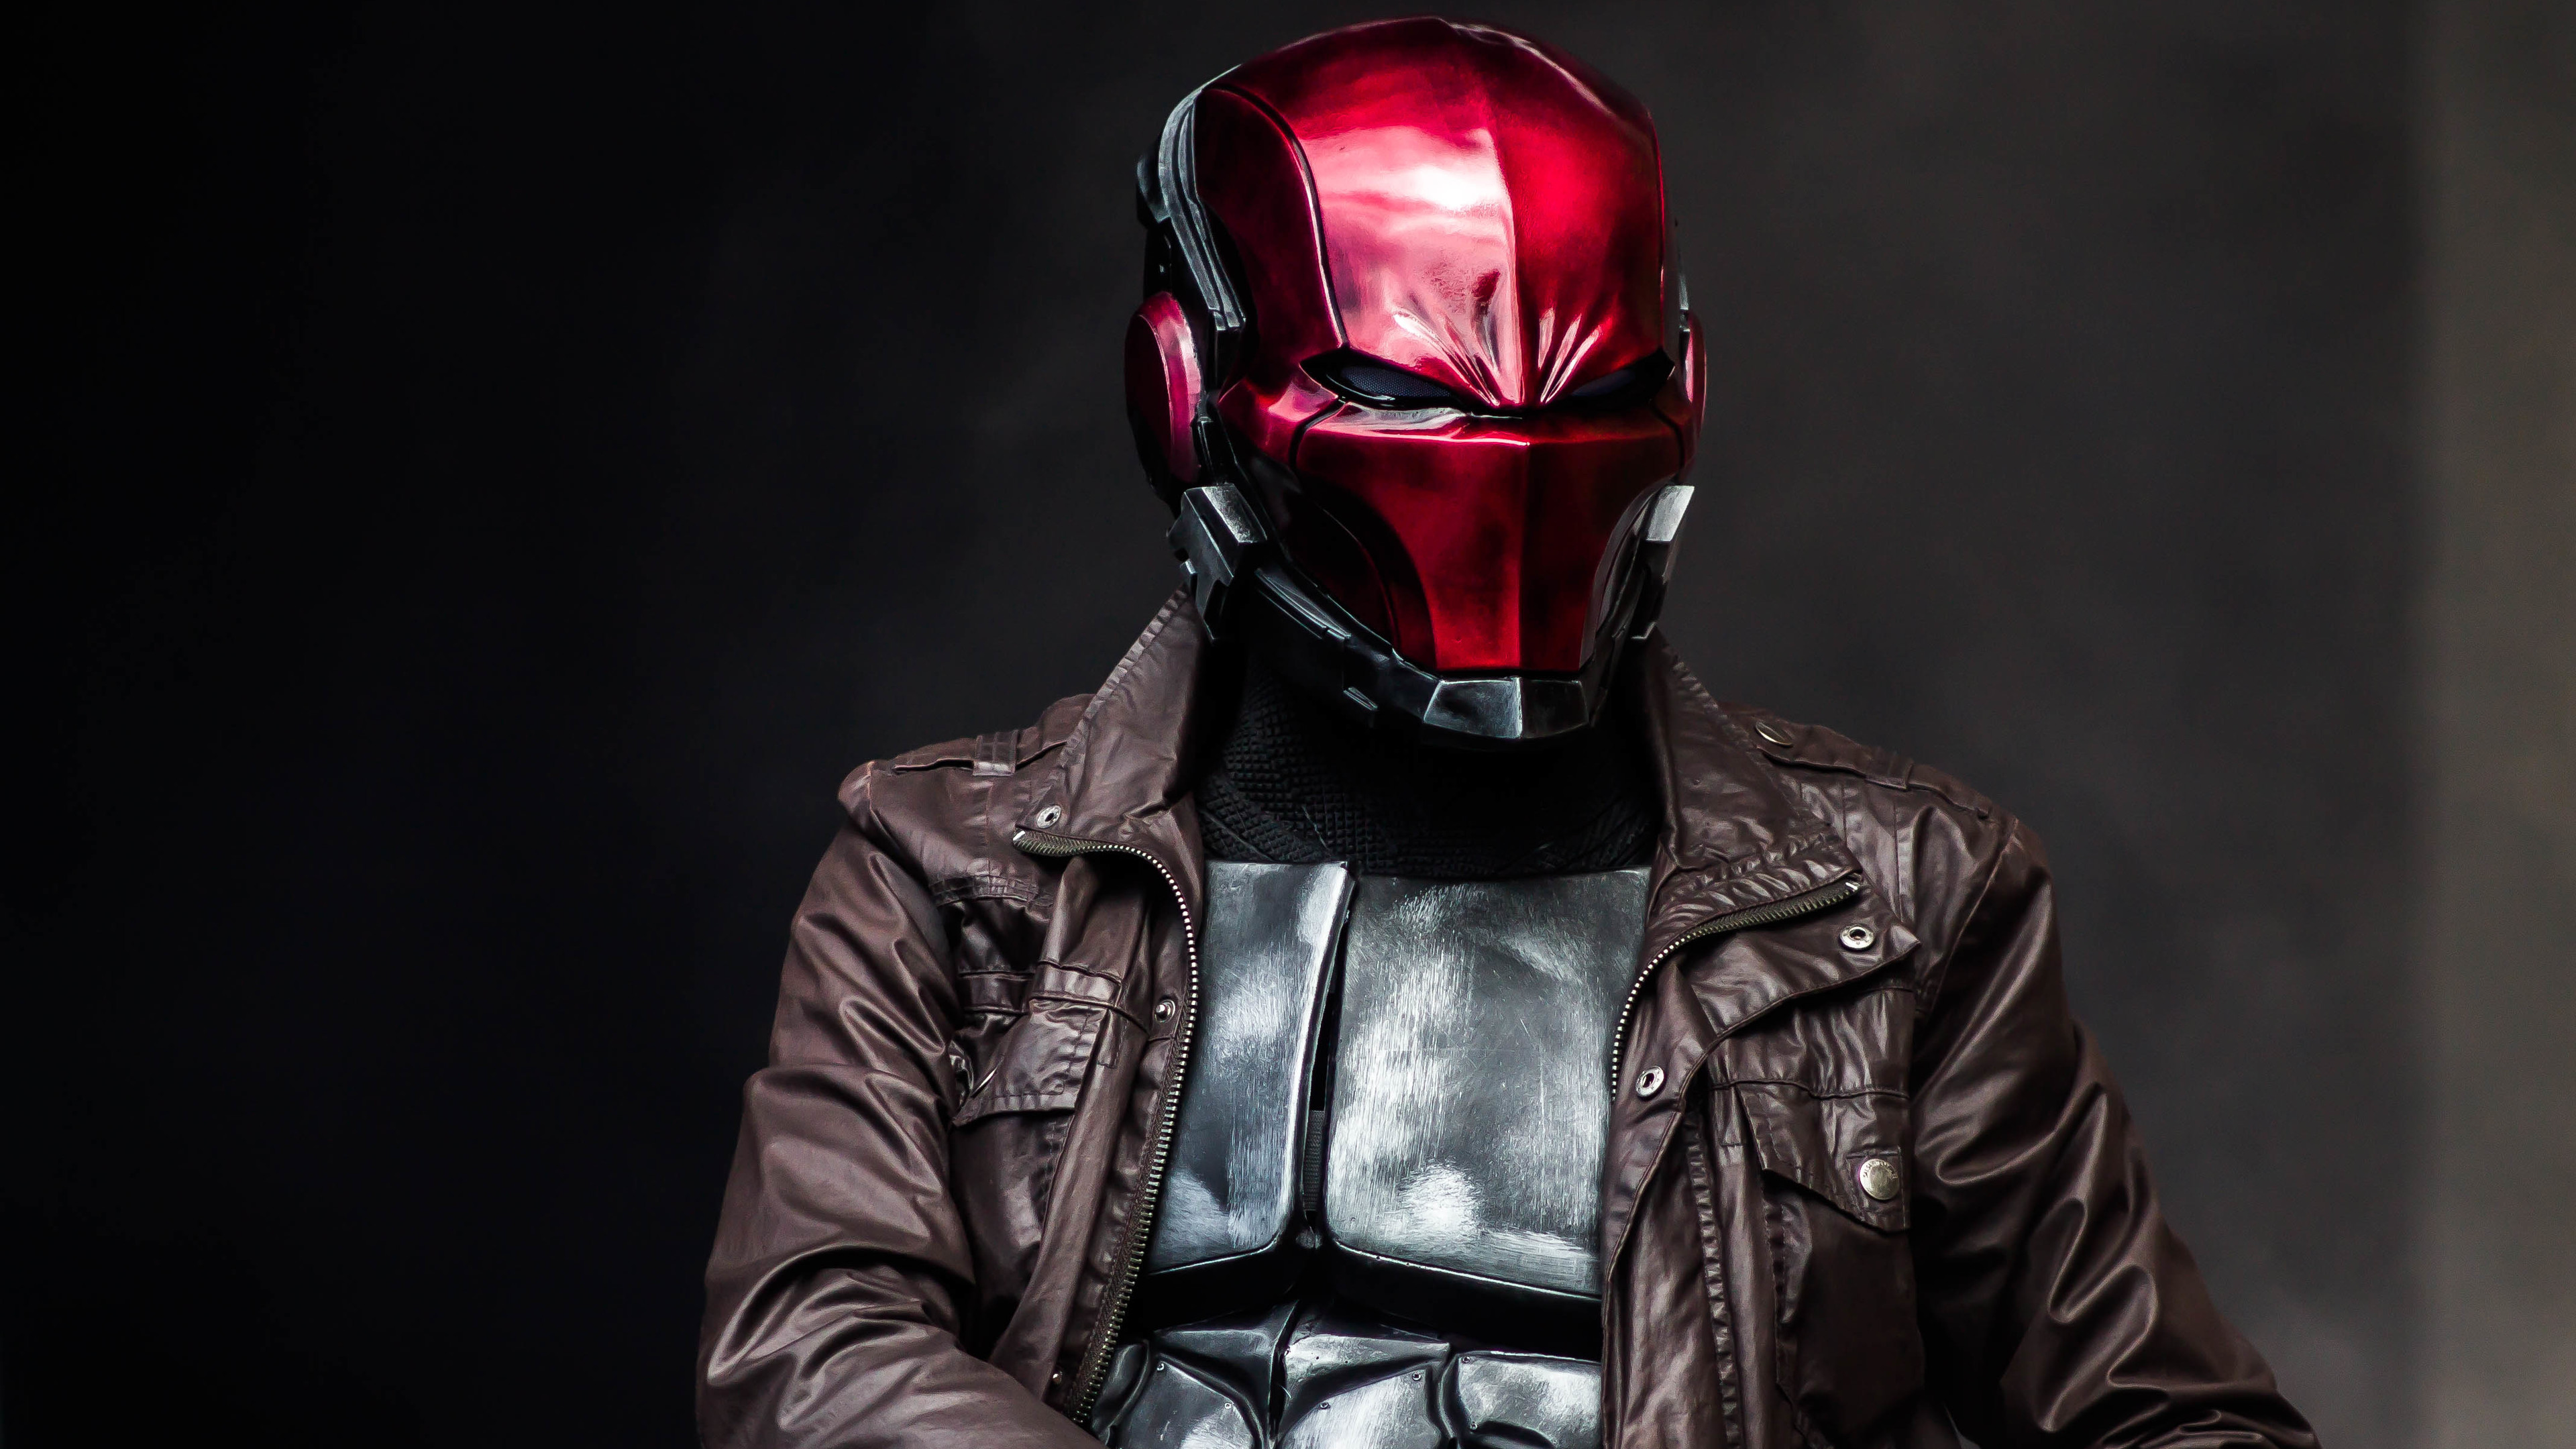 red hood cosplay 4k 1547936504 - Red Hood Cosplay 4k - superheroes wallpapers, red hood wallpapers, hd-wallpapers, cosplay wallpapers, 4k-wallpapers